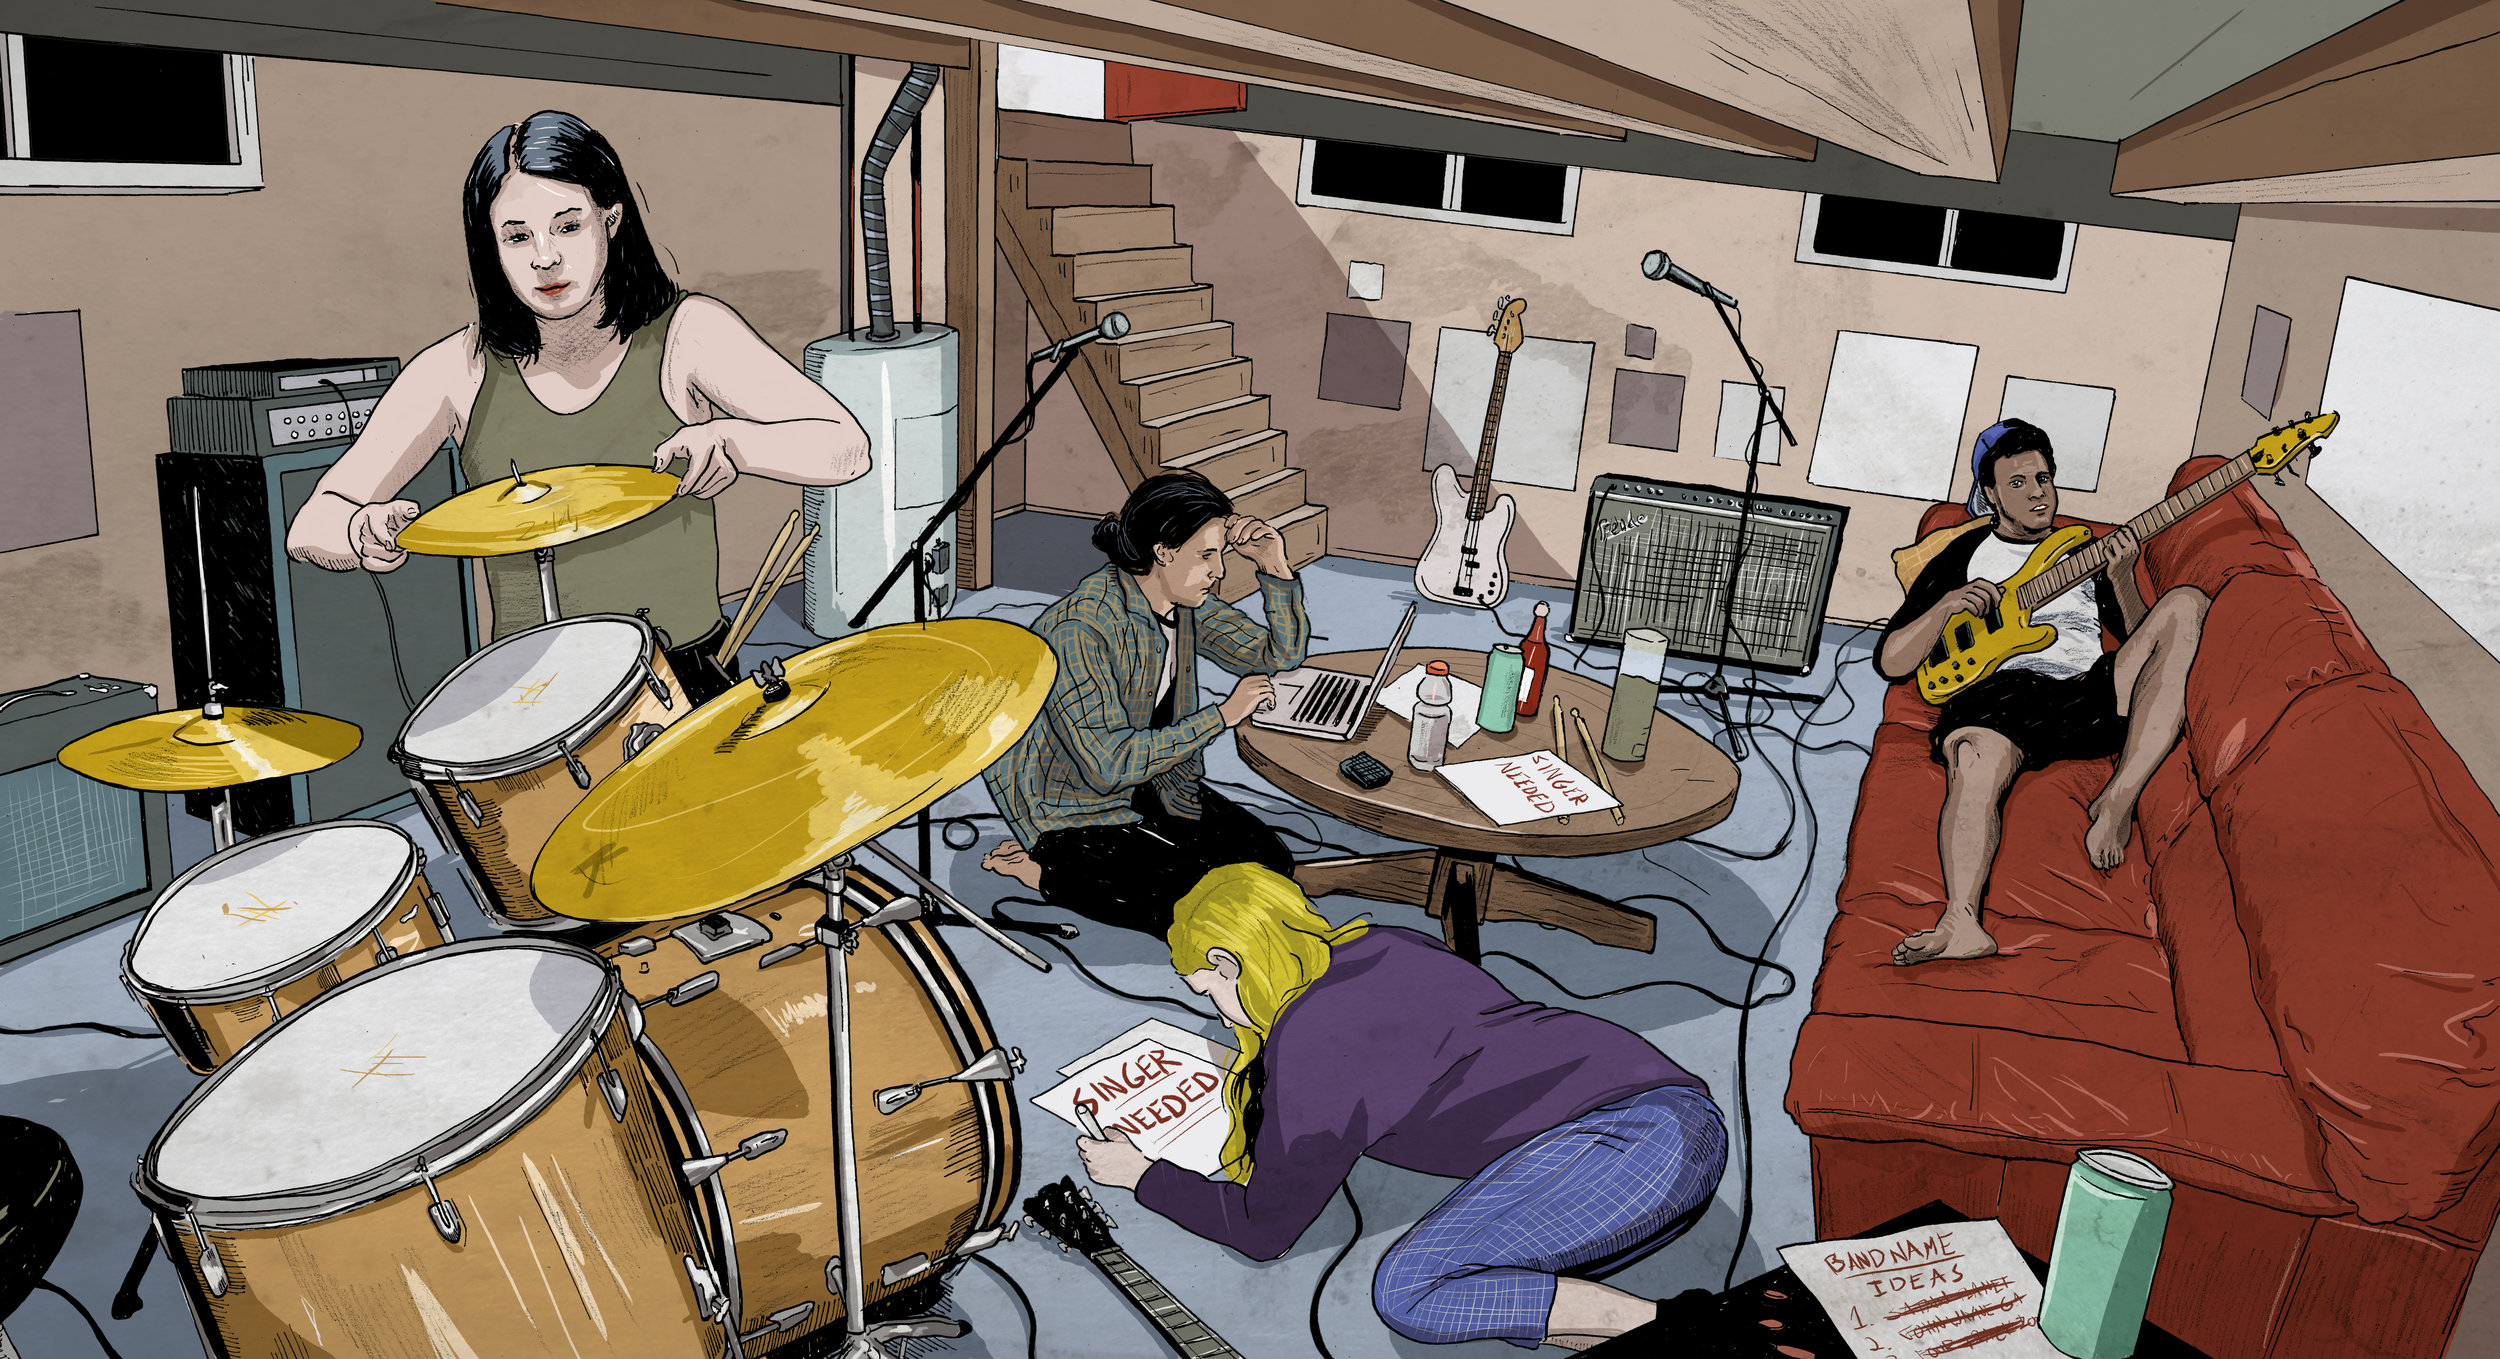 How to Start a Band by Zachary Lipez